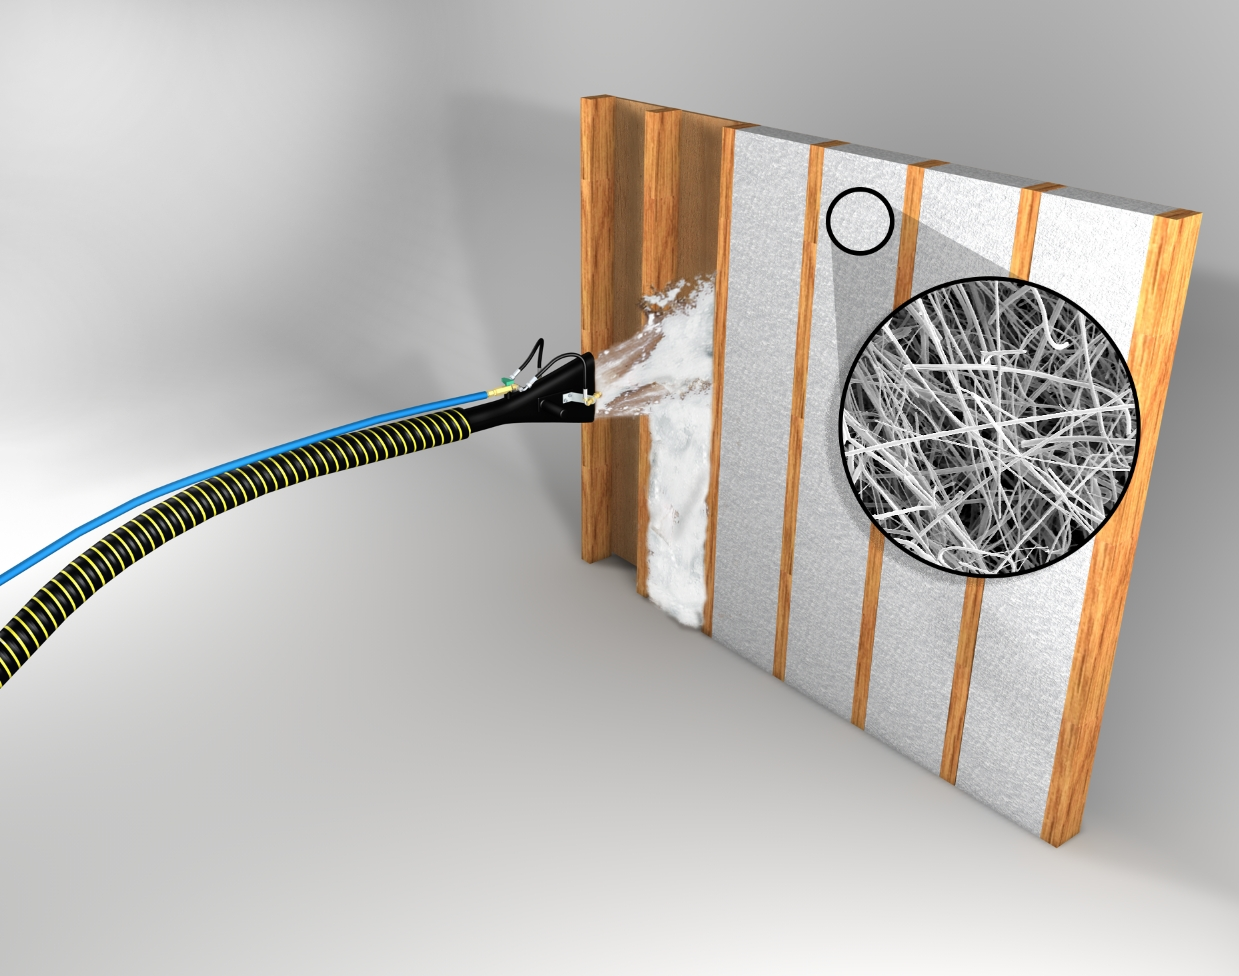 Introducing Johns Manville Spider 174 Plus Blow In Insulation